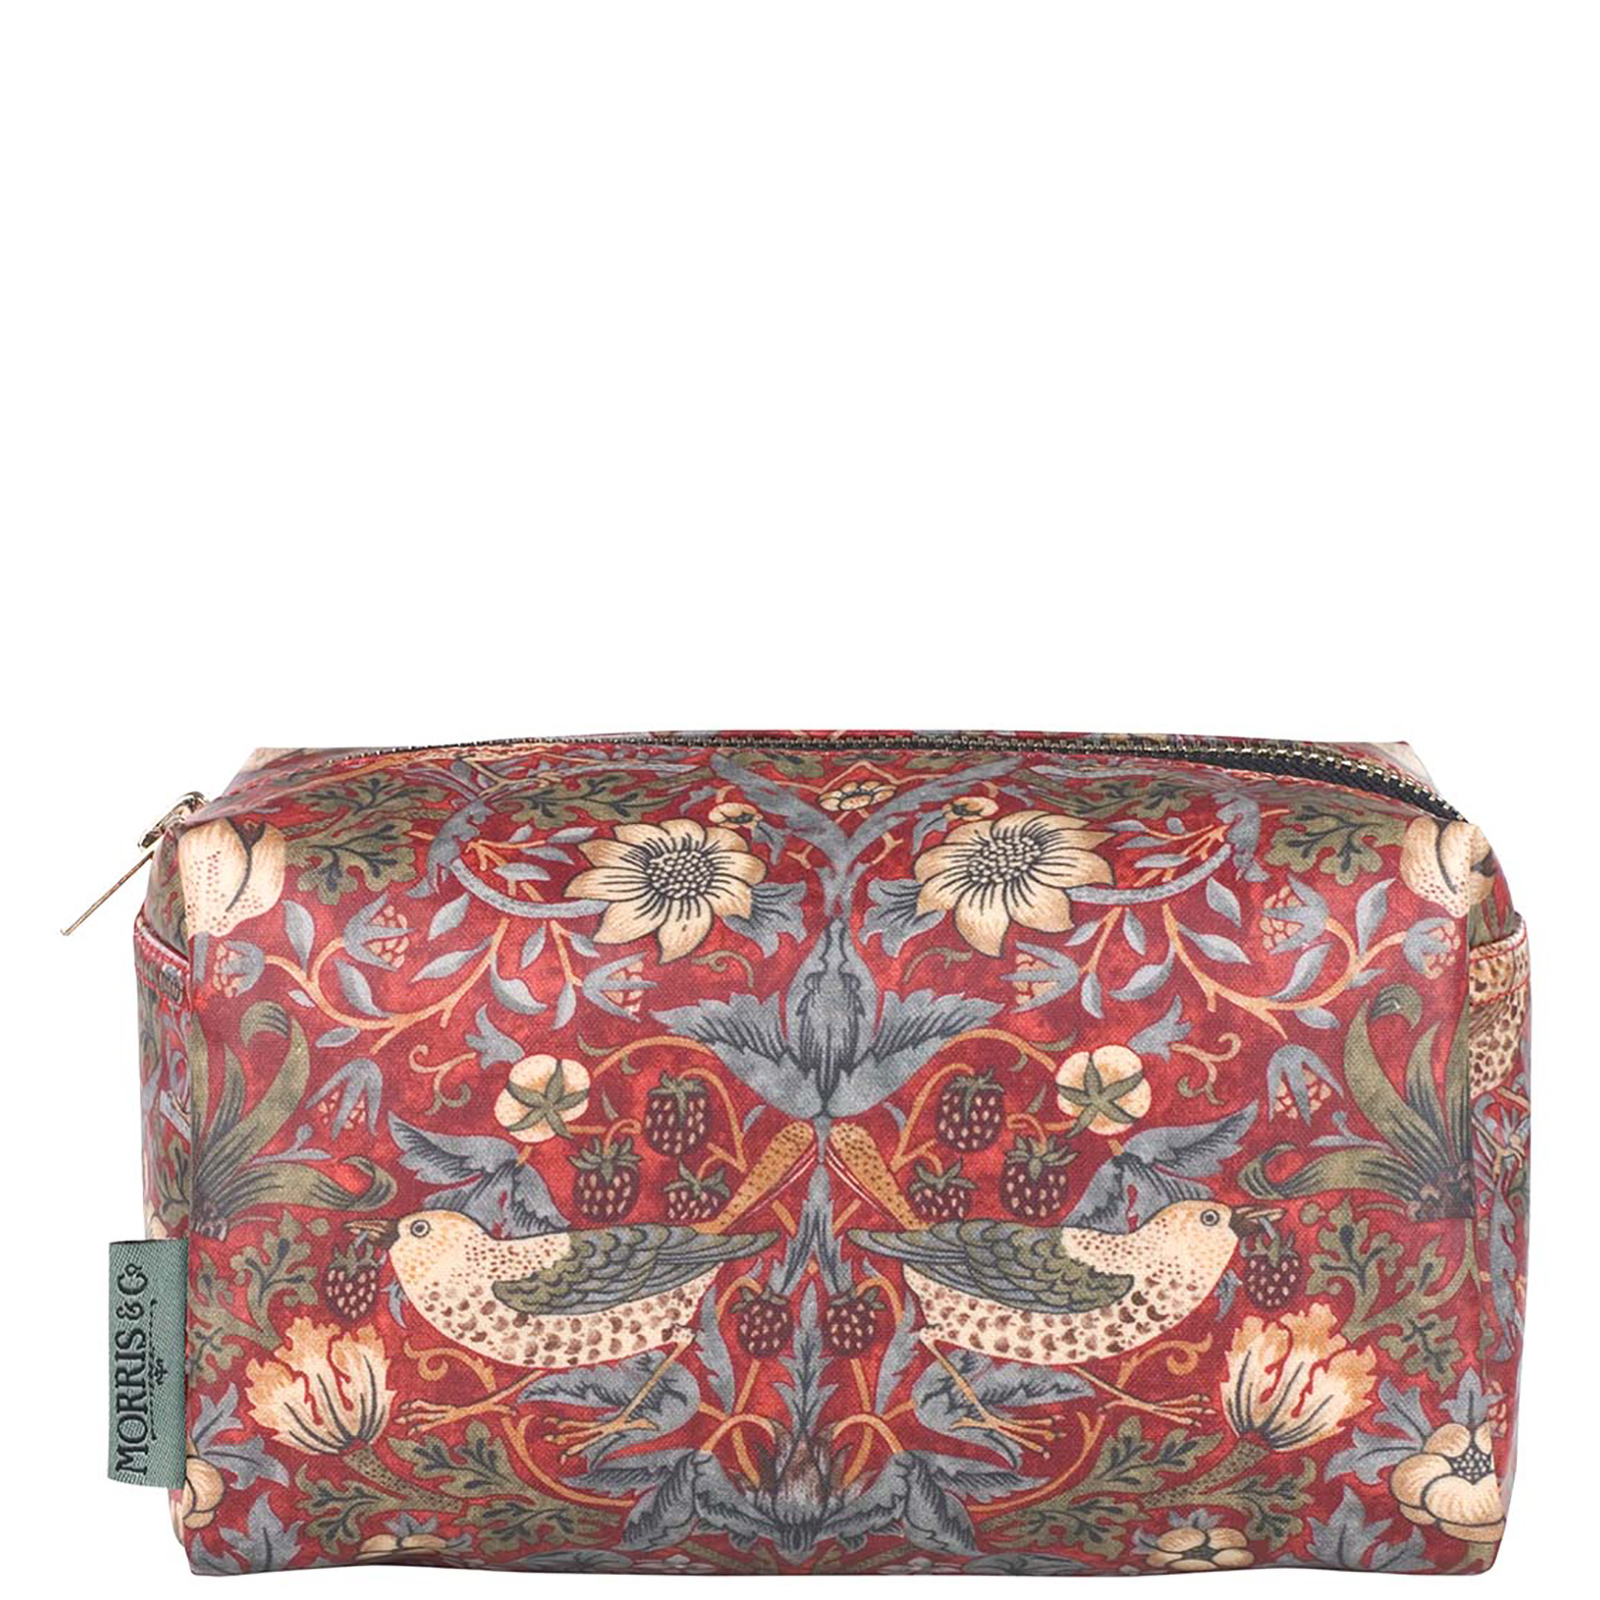 MORRIS & Co Strawberry Thief Medium Cosmetic Bag